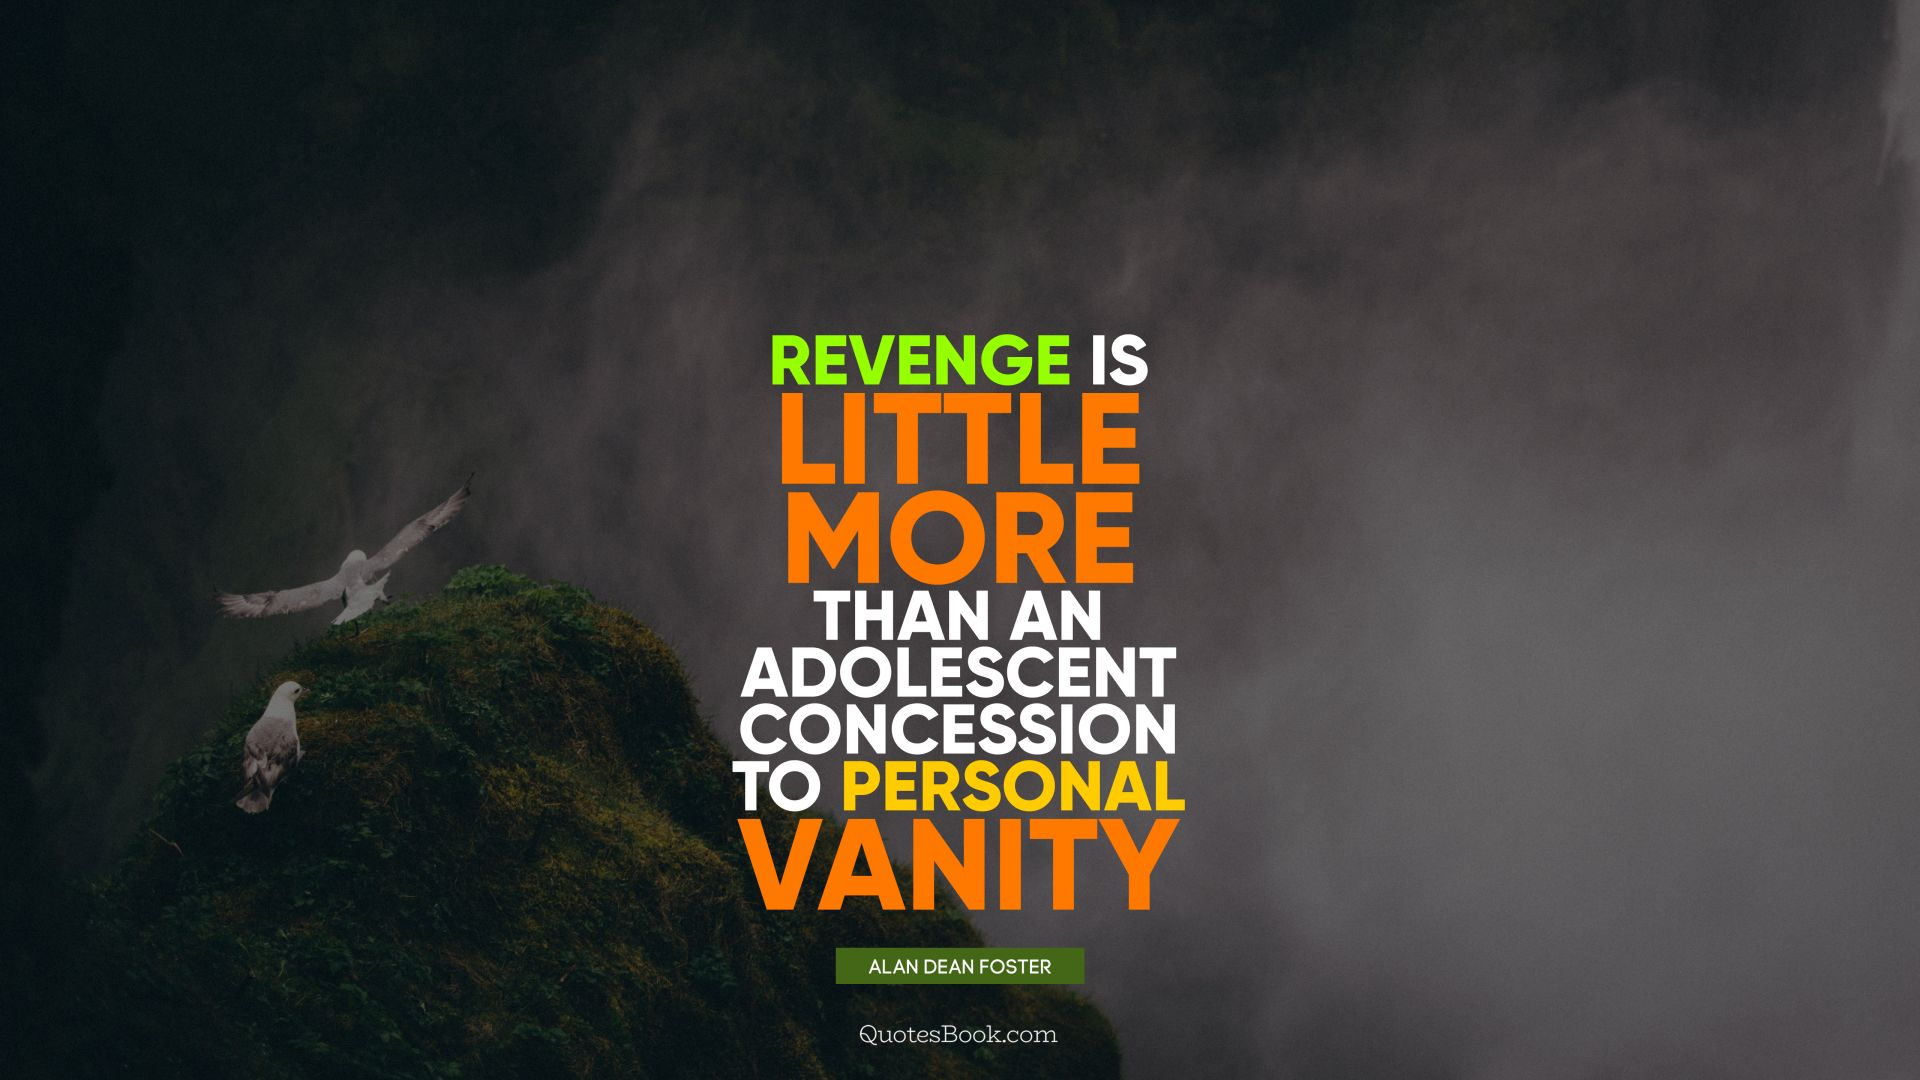 Revenge is little more than an adolescent concession to personal vanity. - Quote by Alan Dean Foster